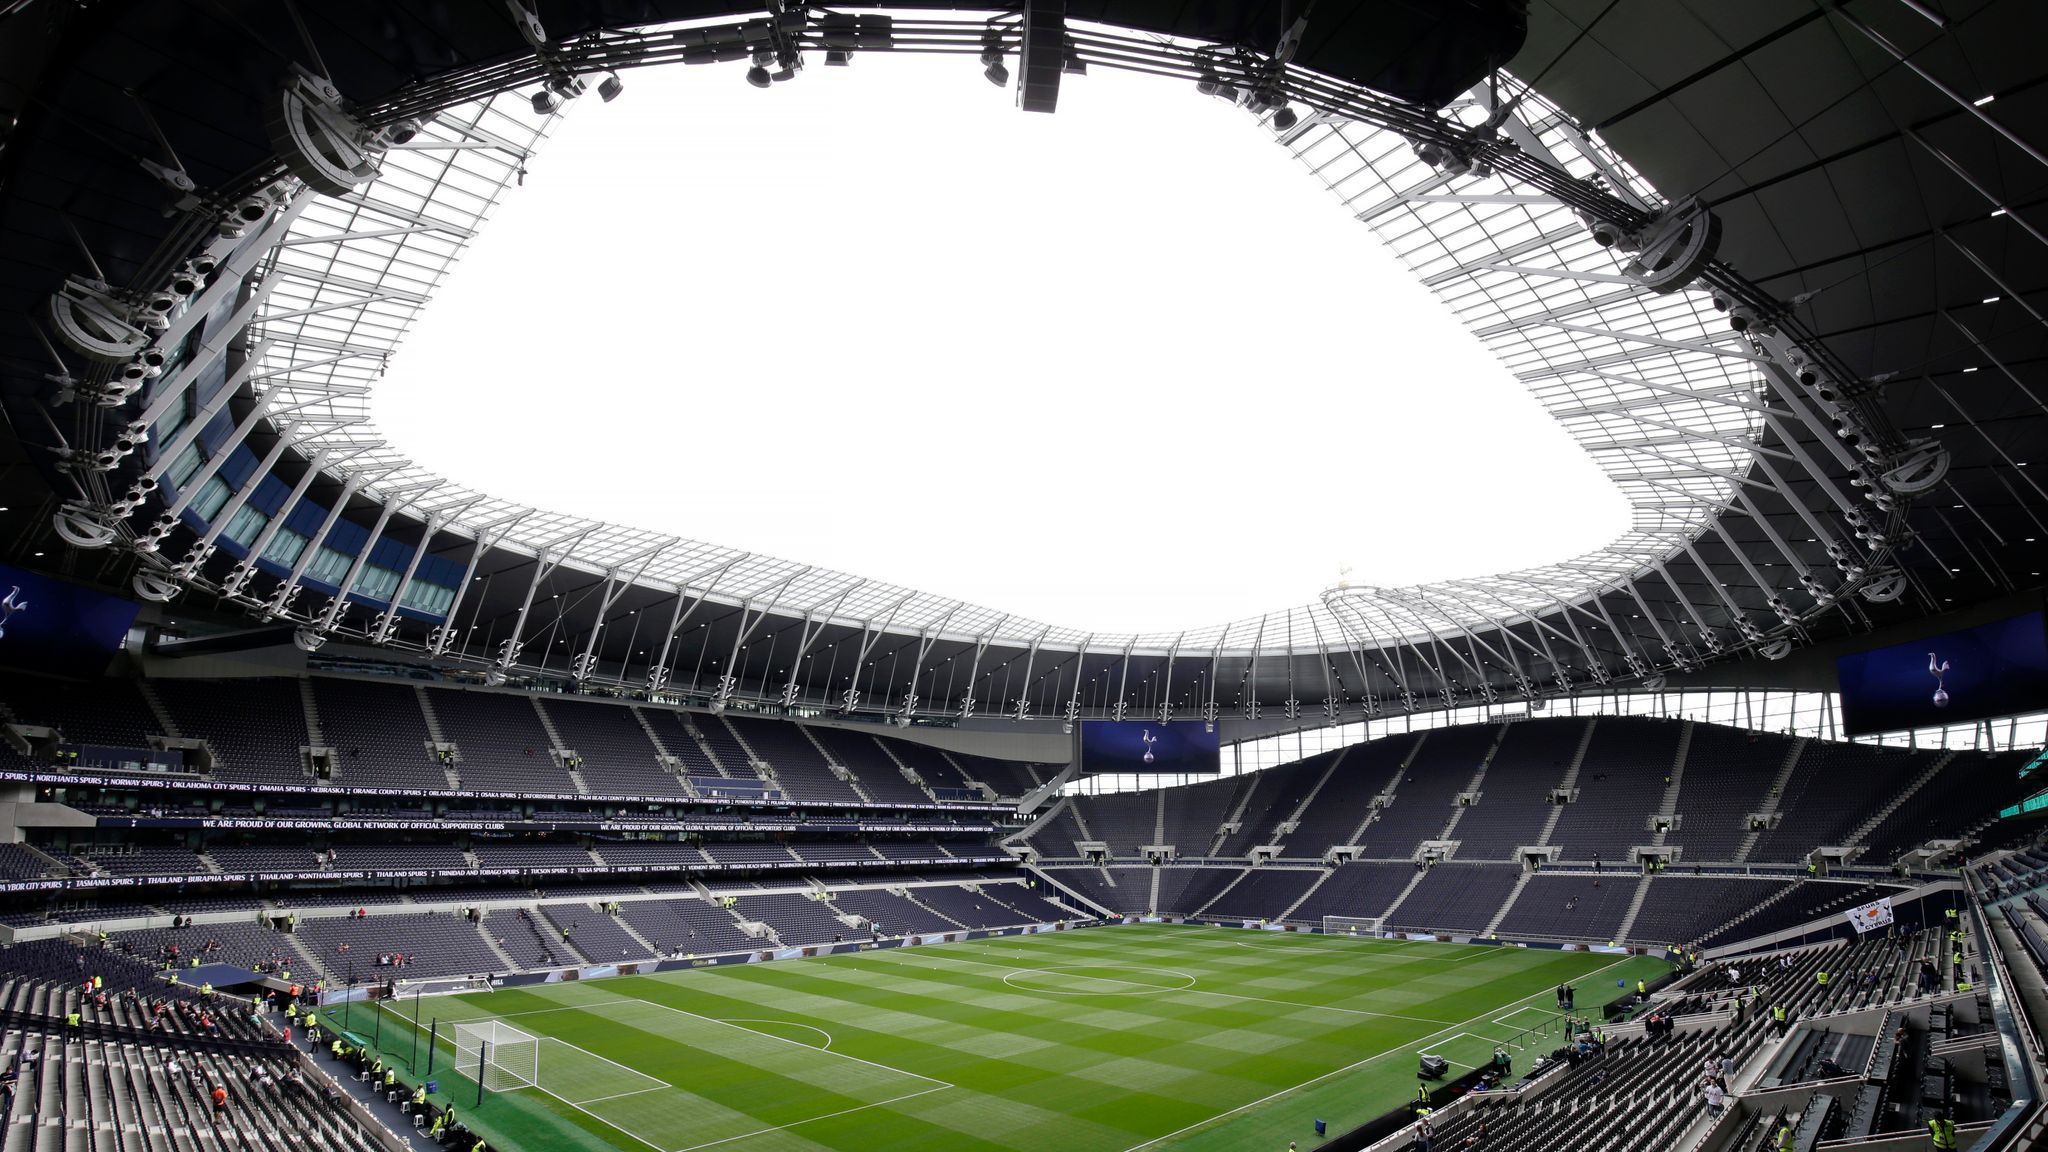 Tottenham Offer Stadium To Nhs In Fight Against The Coronavirus Pandemic Football News Sky Sports